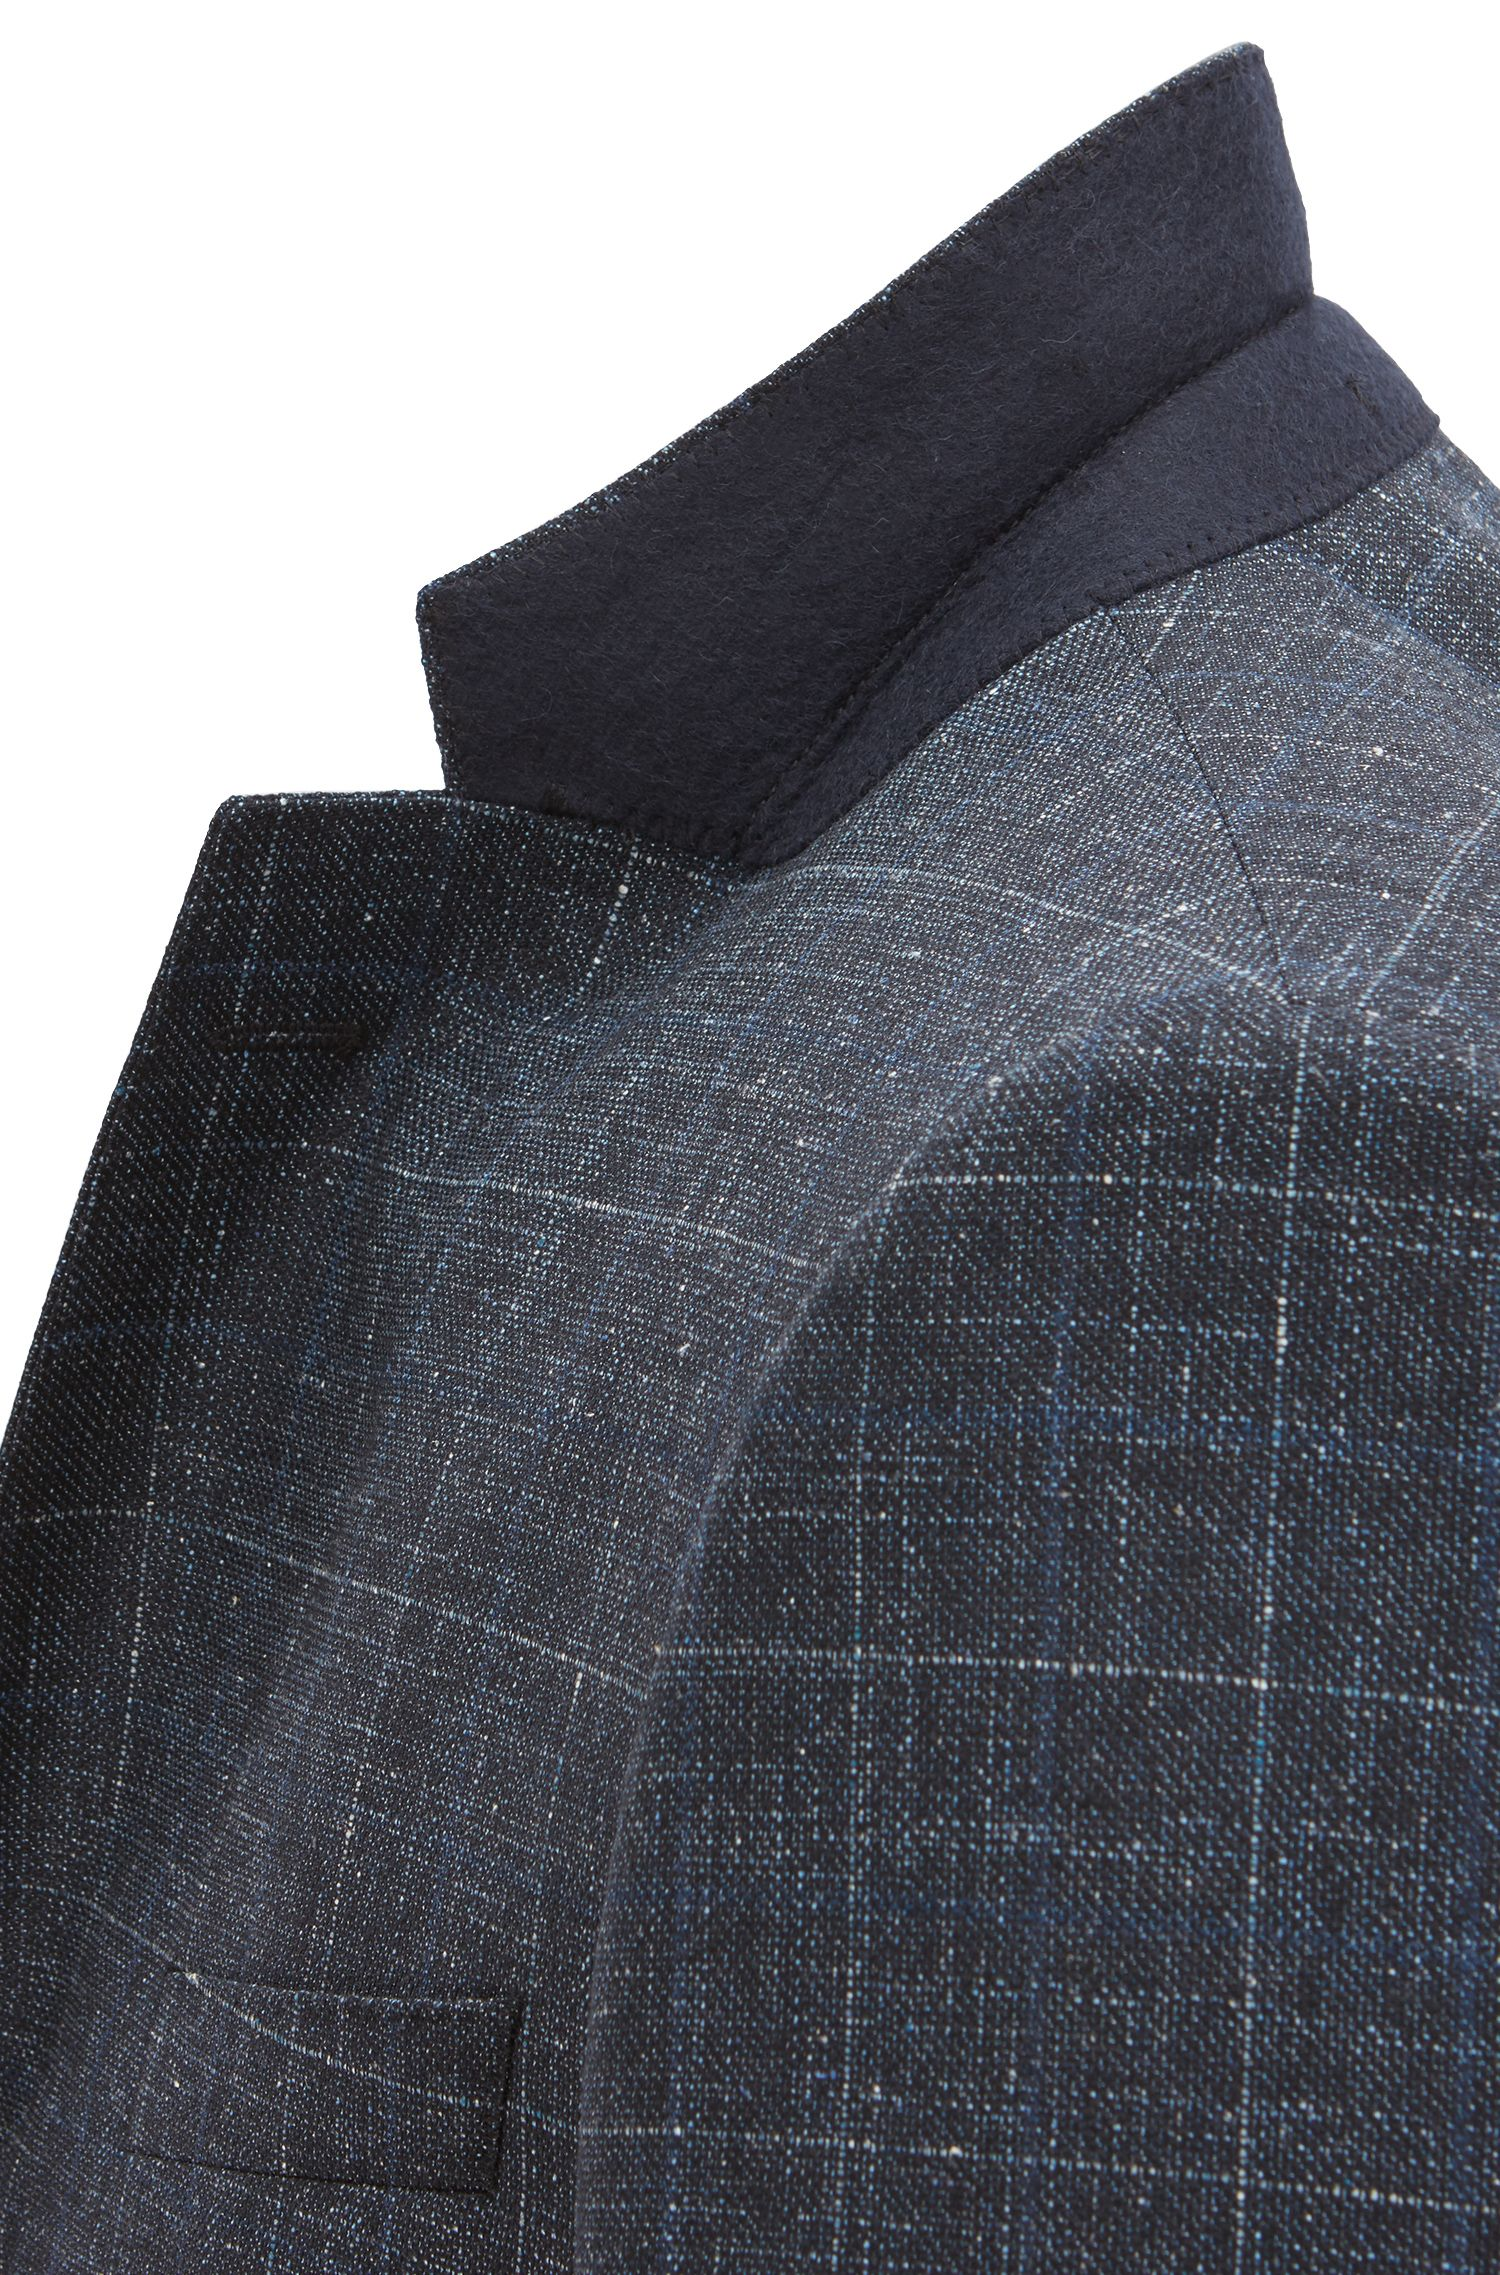 Virgin Wool Blend 3-Piece Suit, Slim Fit | Huge/Genius WE, Dark Blue